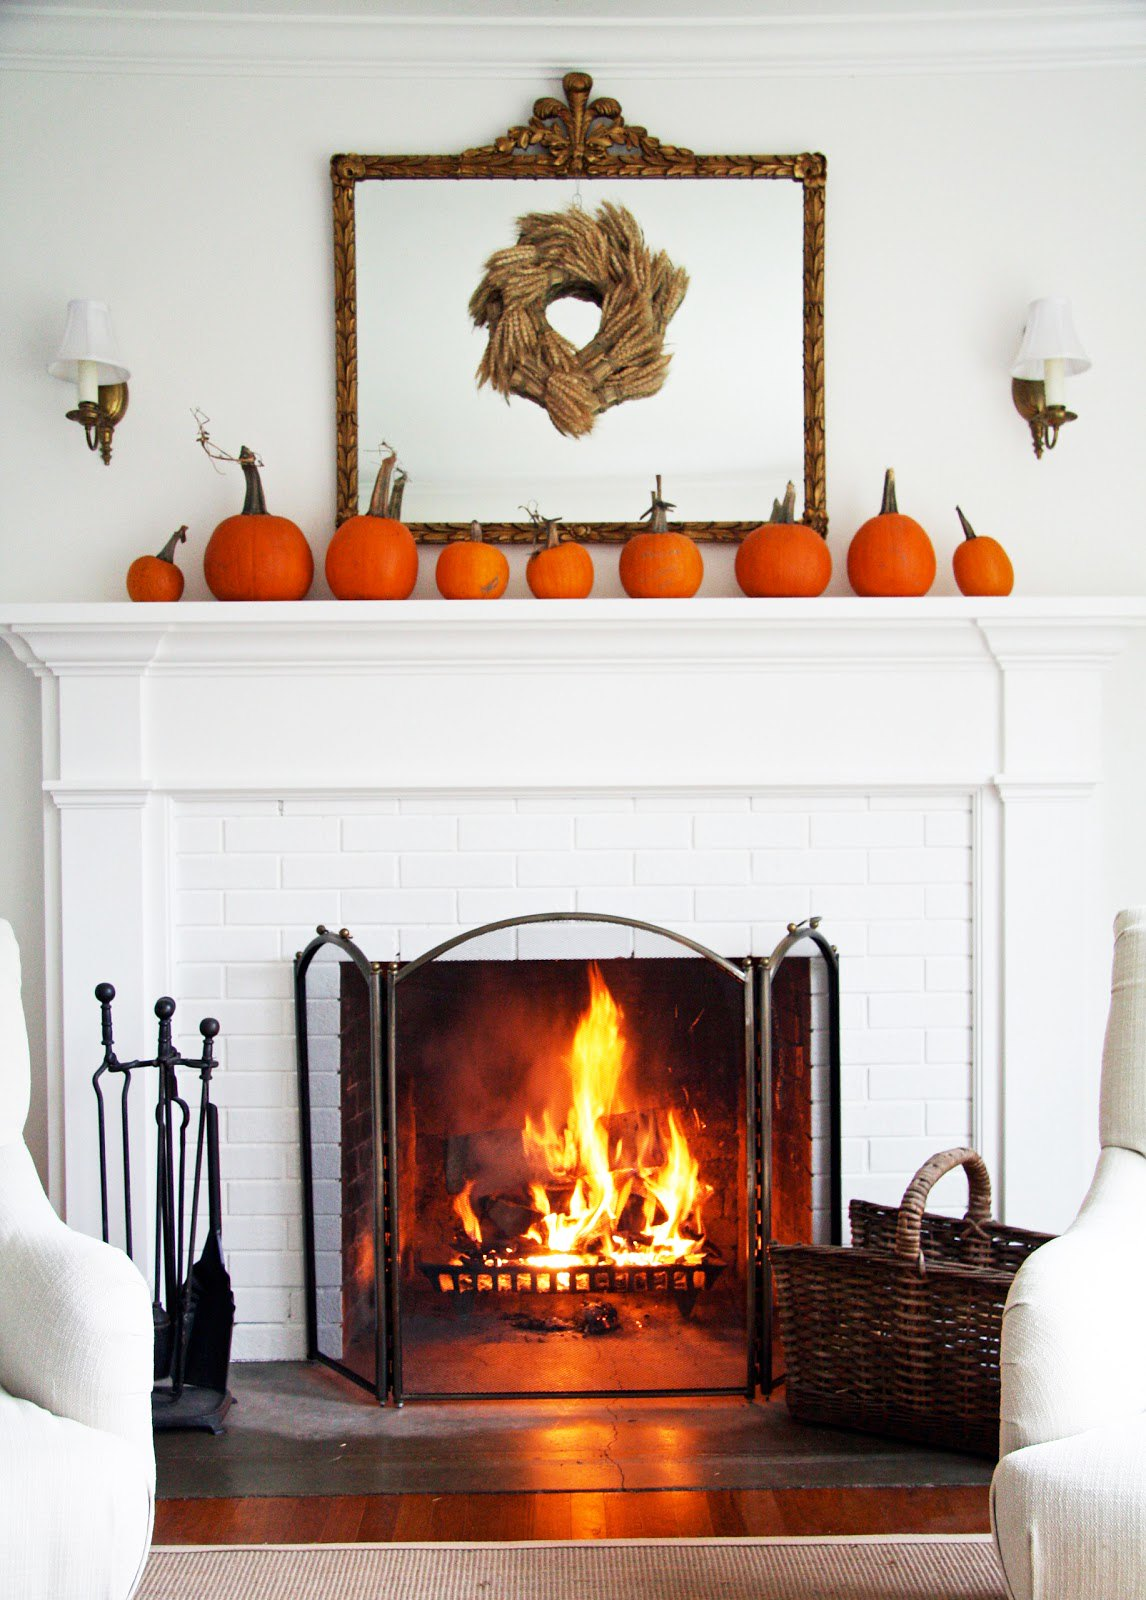 Pumpkin Simple Subtle Minimalist Mantel Fireplace Decorations Decorating Ideas Home Decor